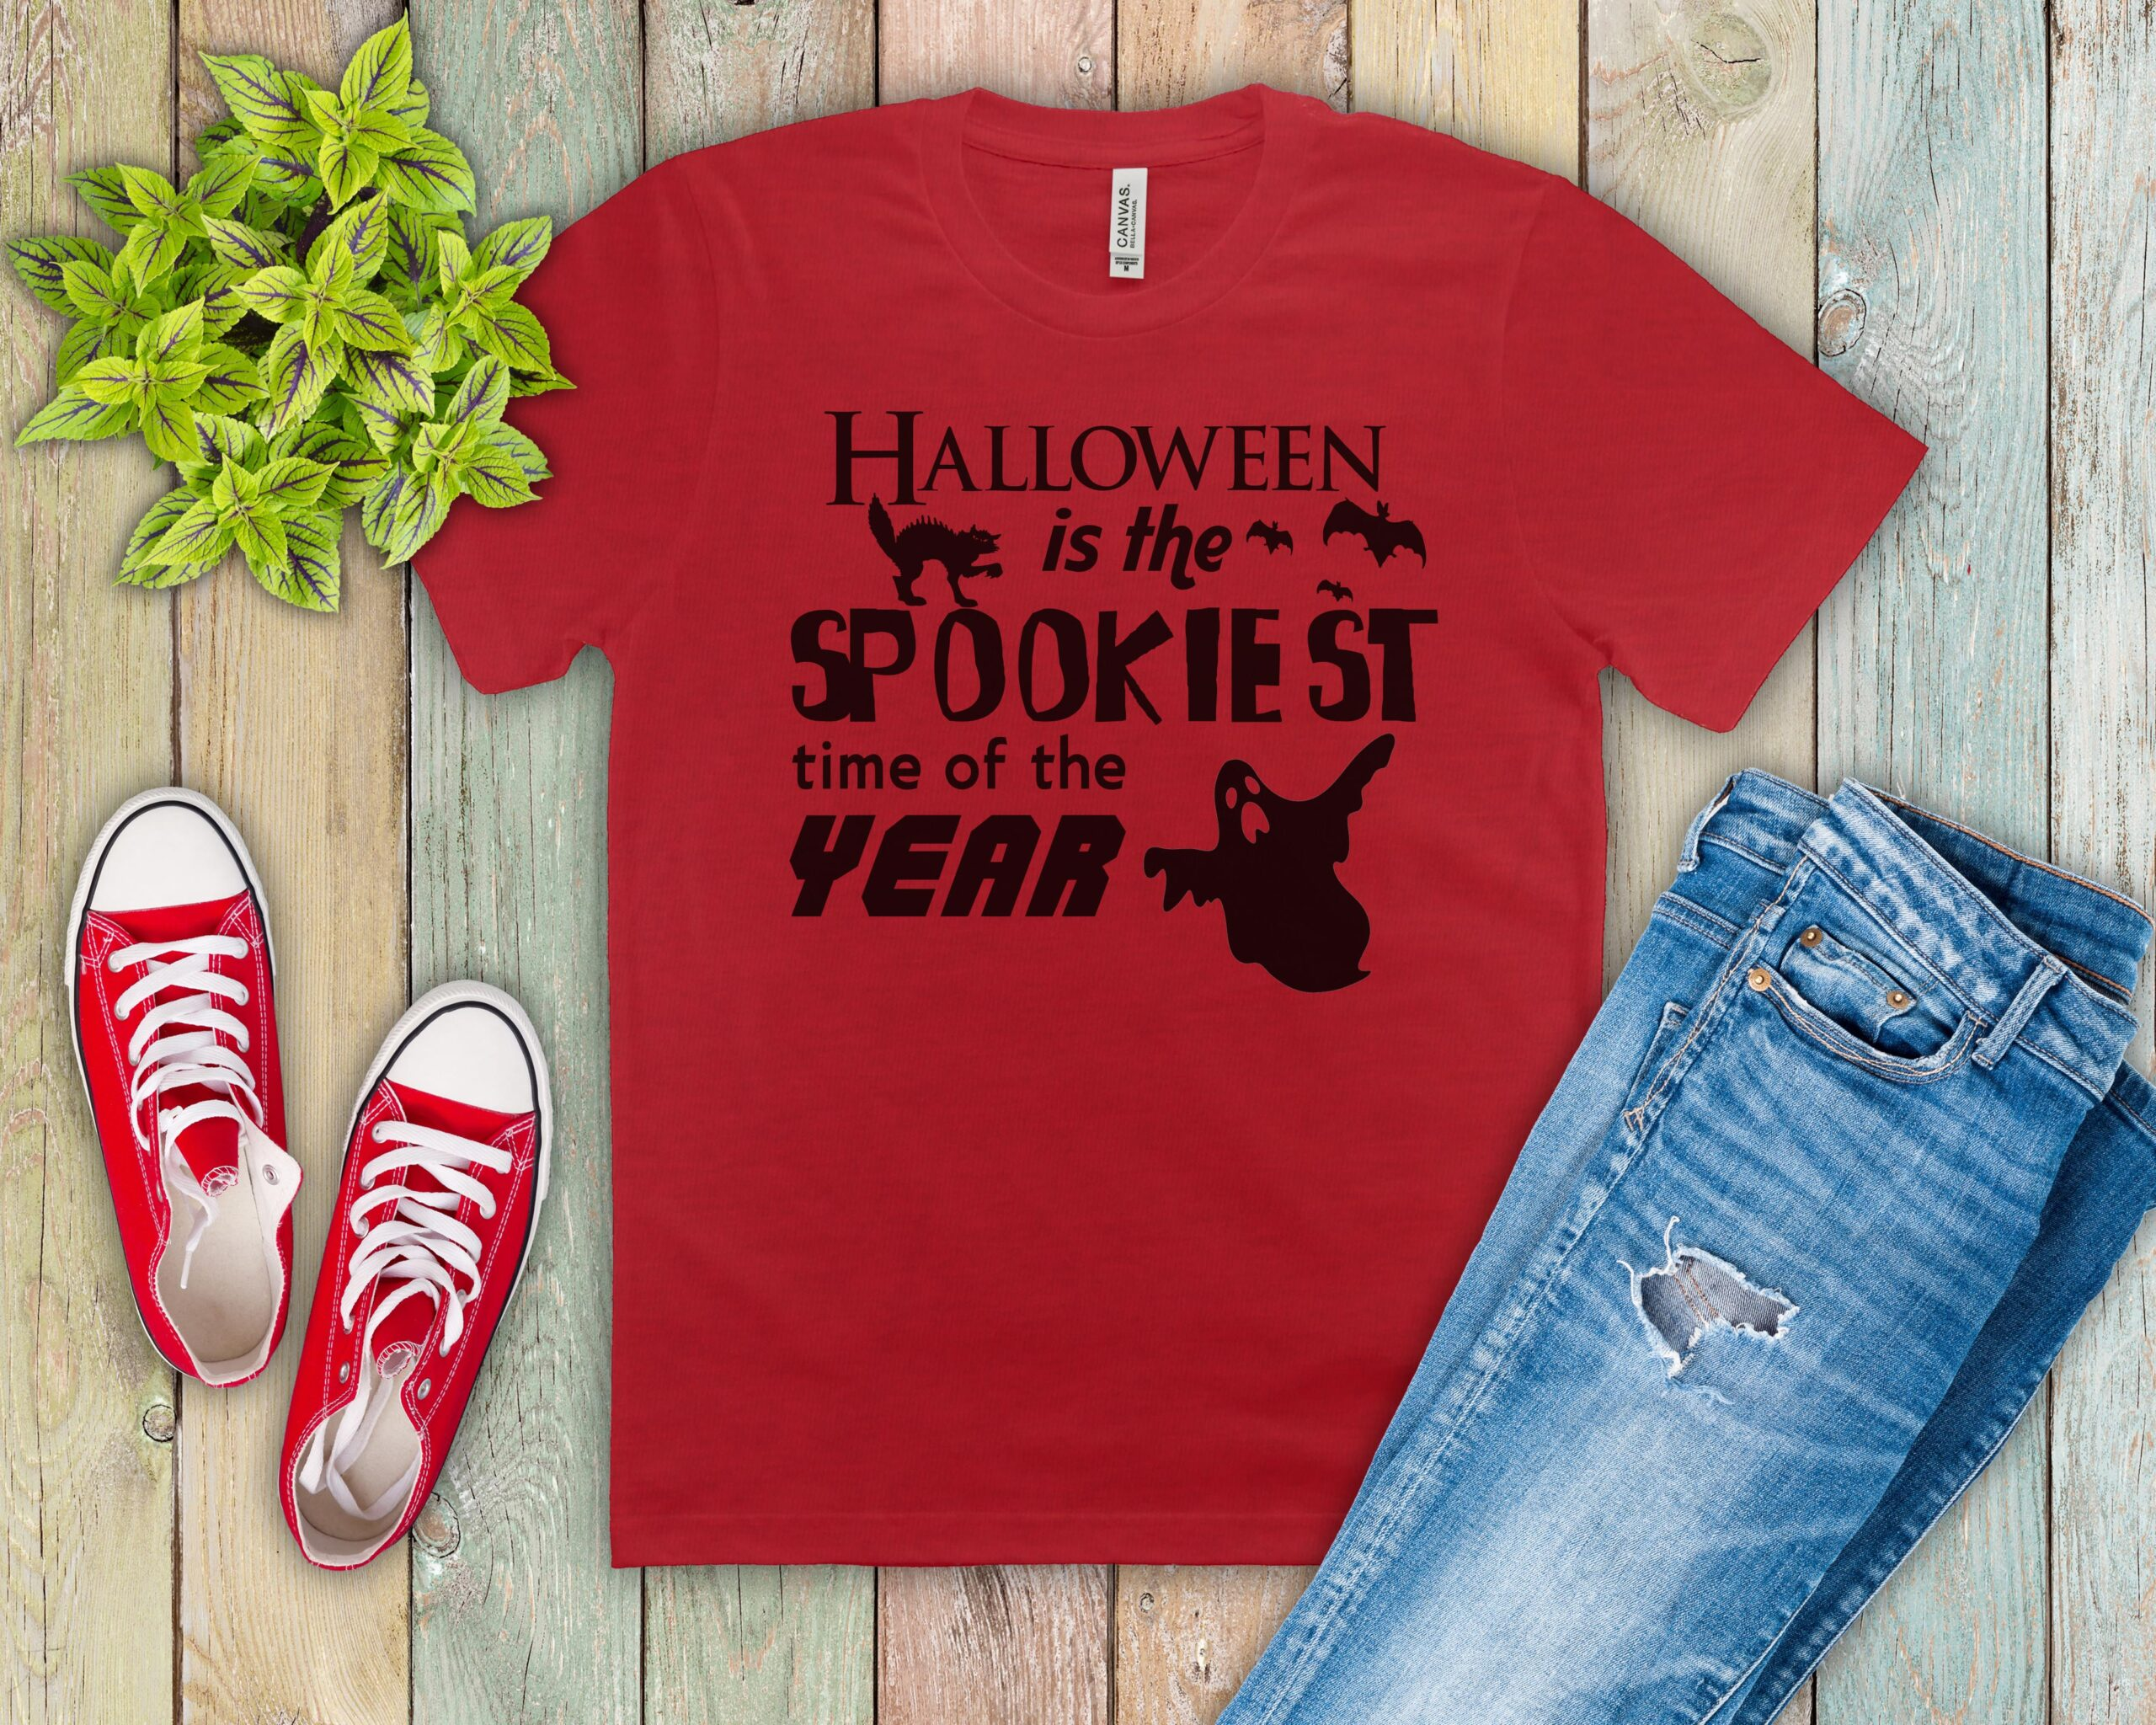 Free Spookiest Time of the Year SVG File